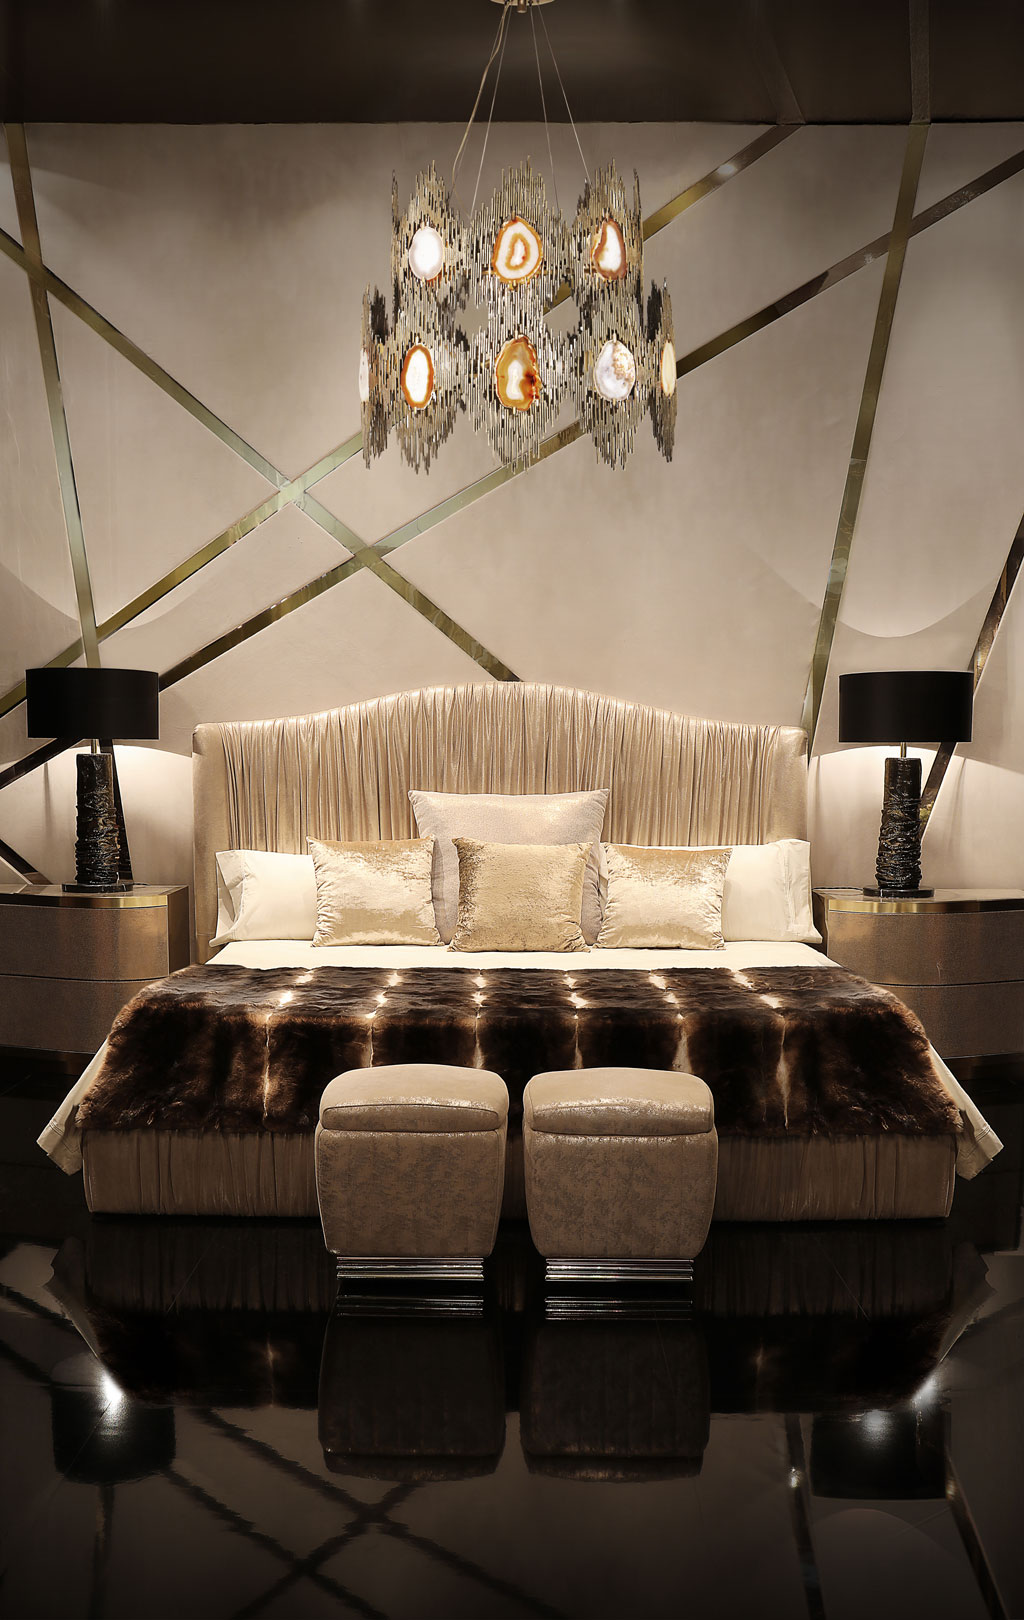 luxurious bedroom with ruched headboard and table lamps by koket and agate chandelier